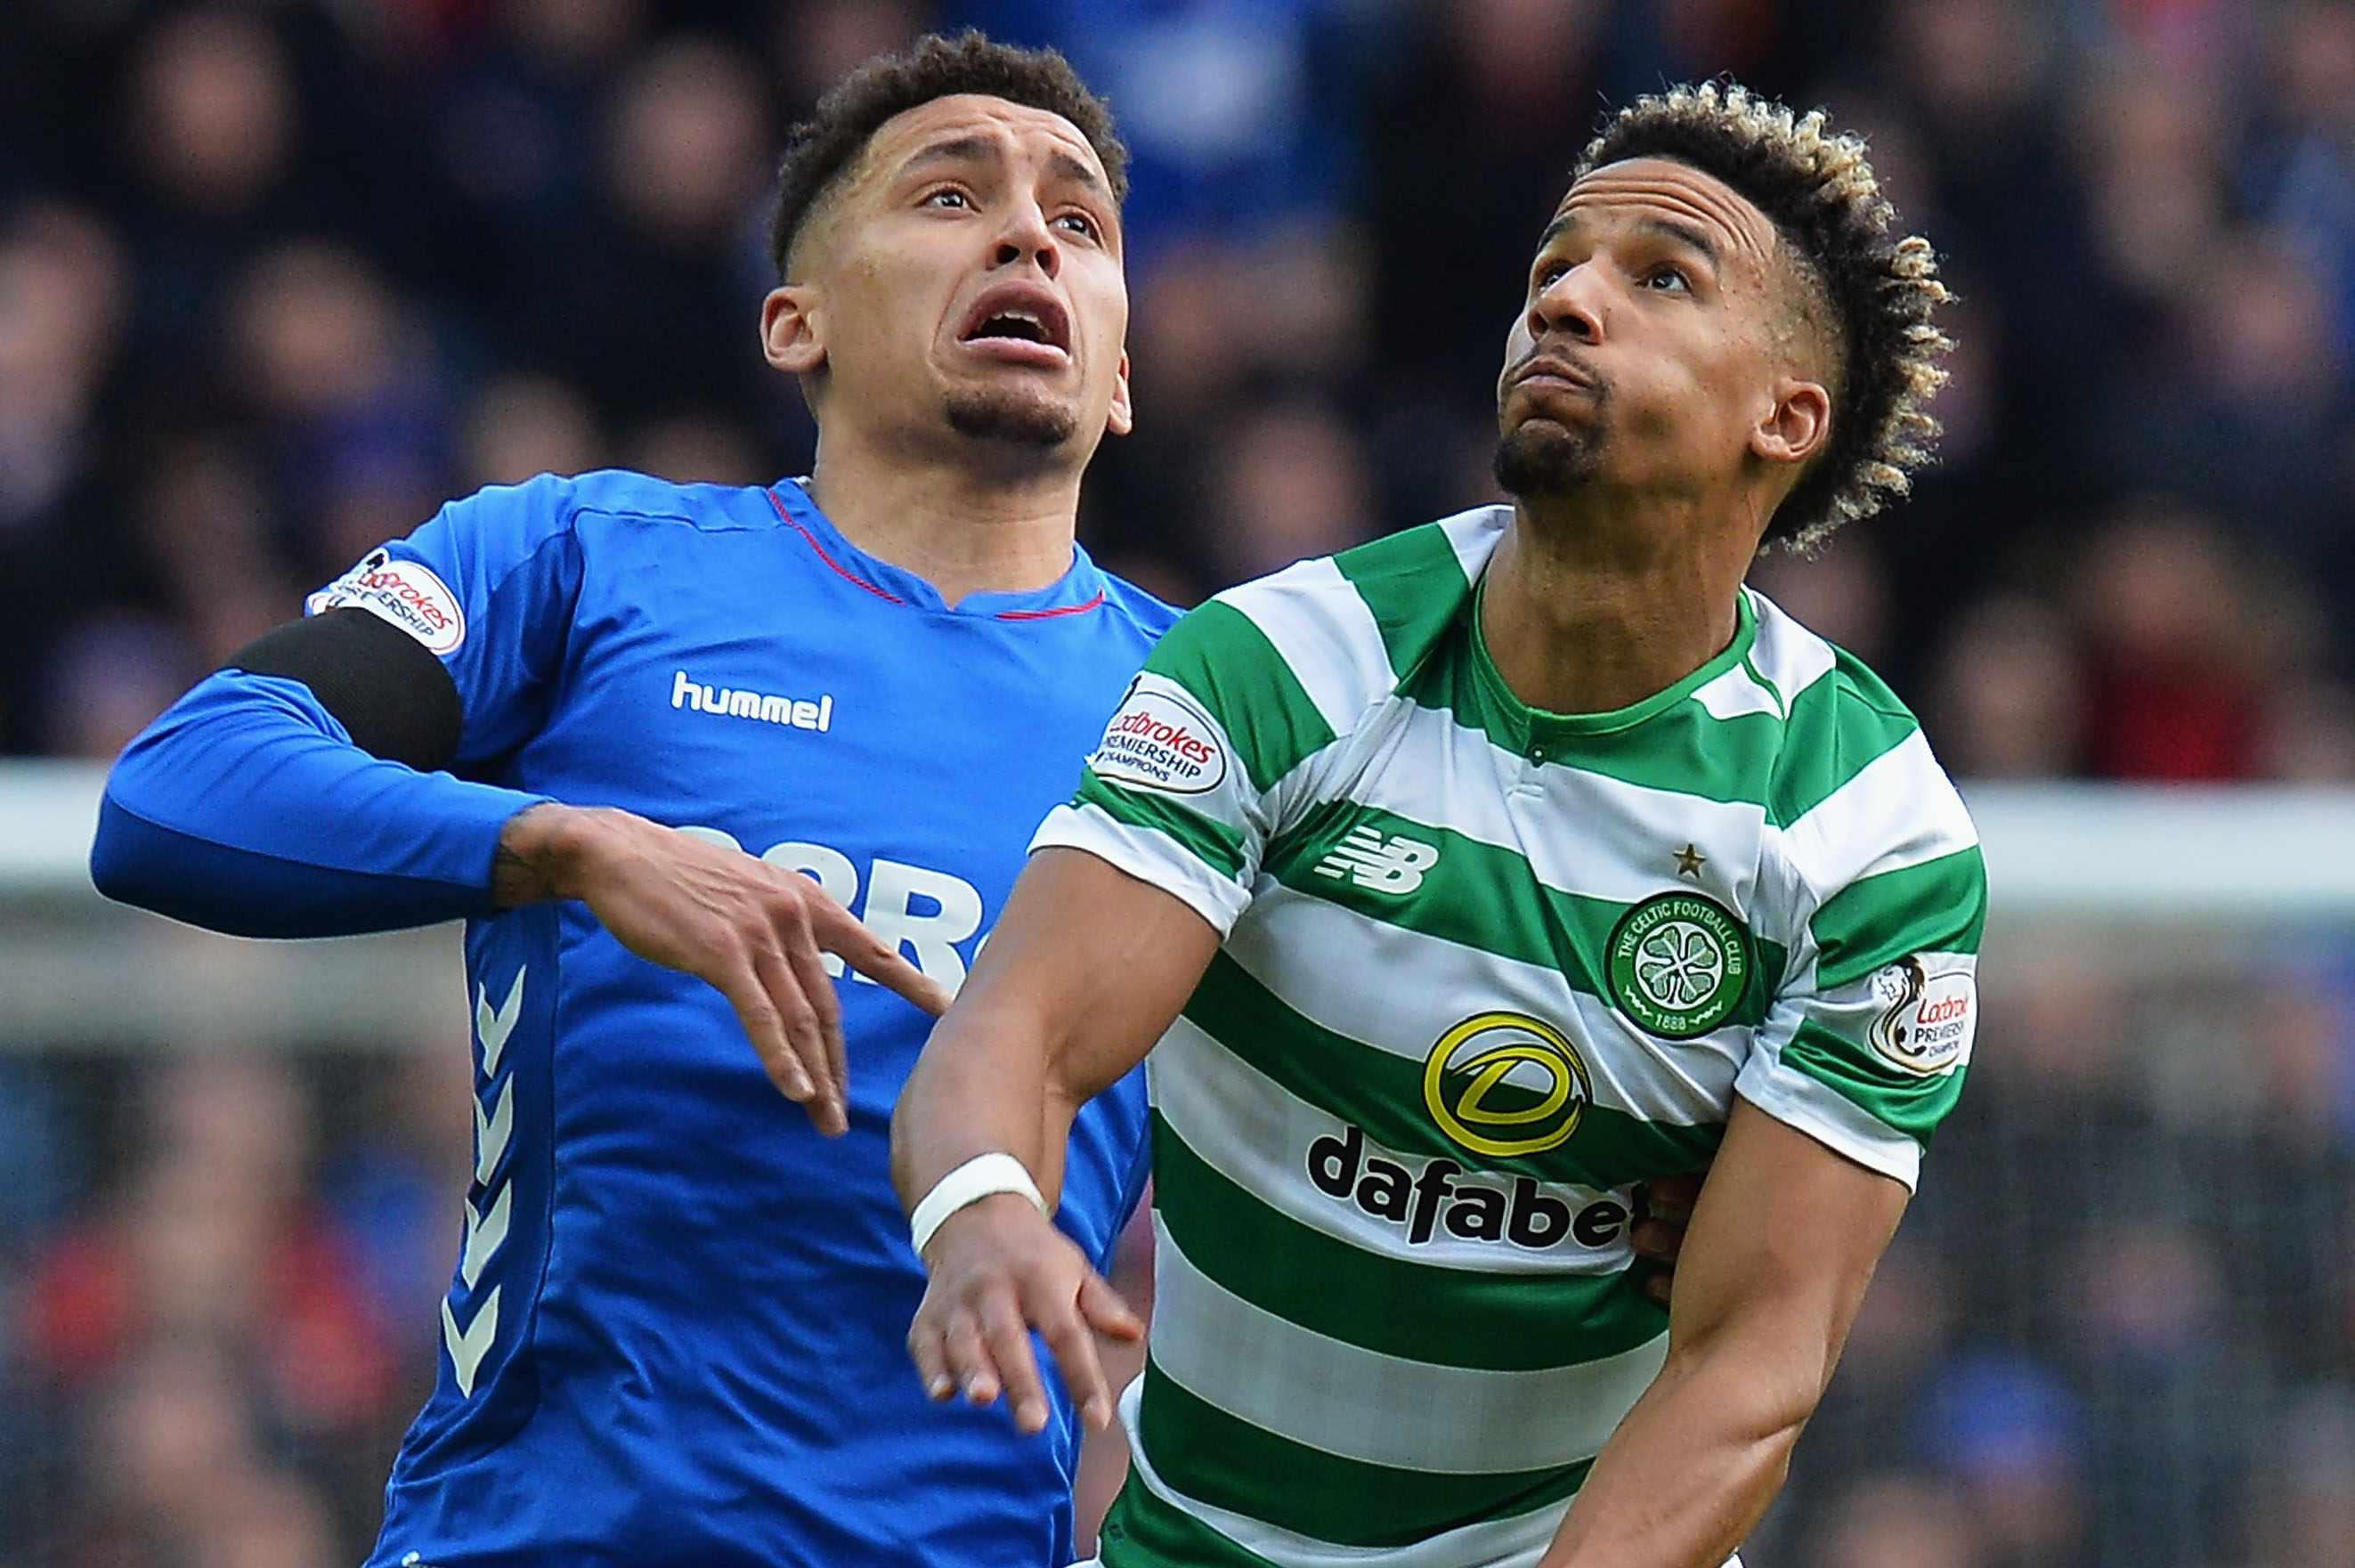 Celtic V Rangers How To Watch Old Firm Derby On Tv And Live Stream